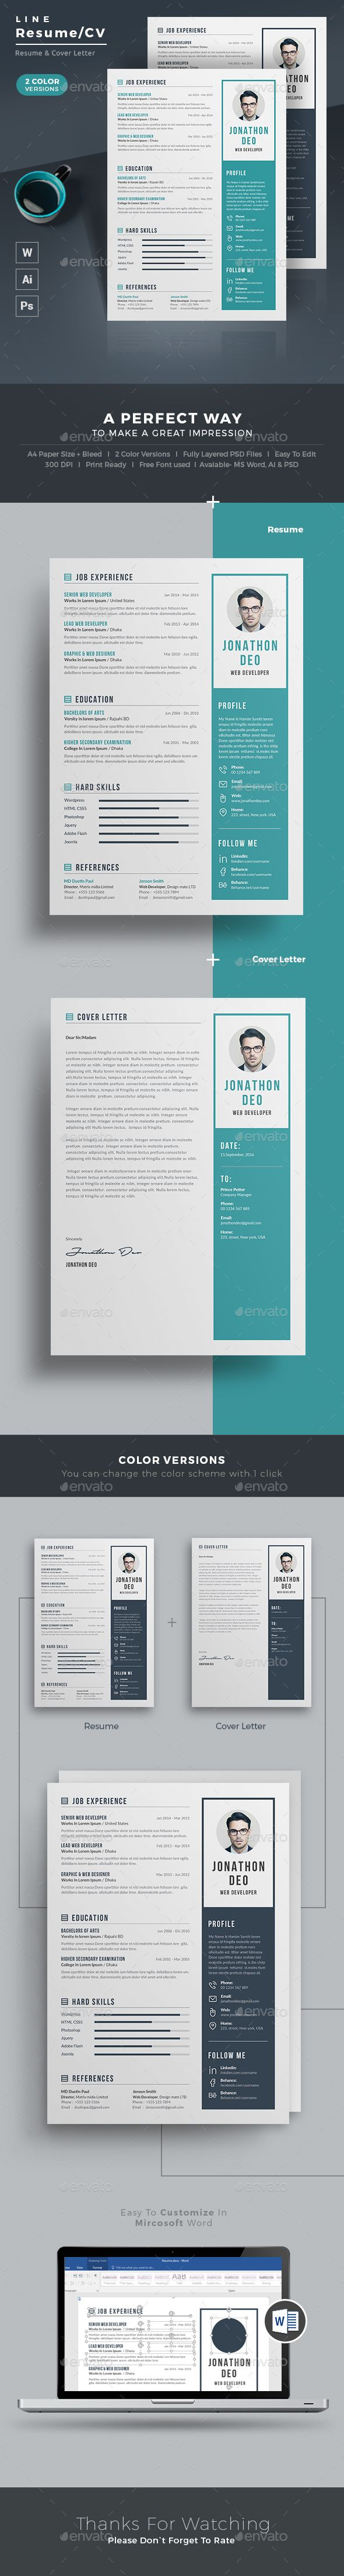 resume cv template microsoft word and page design resume word cv template super modern and professional look elegant page designs are easy to use and customize so you can quickly tailor make your